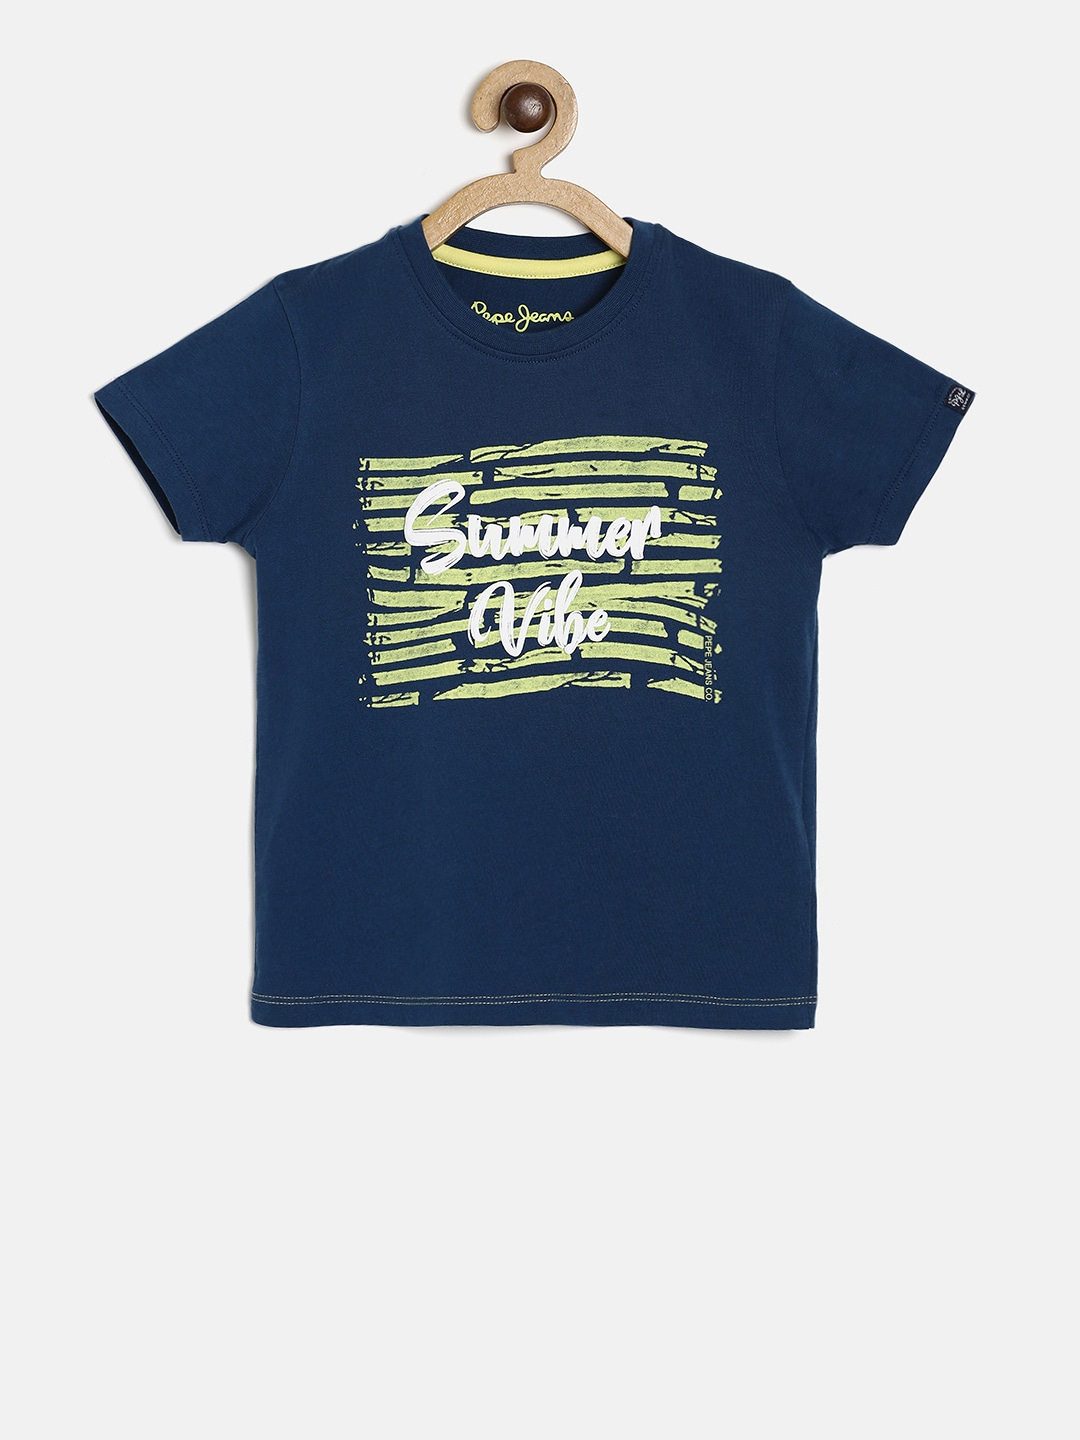 eff7a17821 Pepe Jeans Tshirts - Buy Pepe Jeans Tshirts Online in India